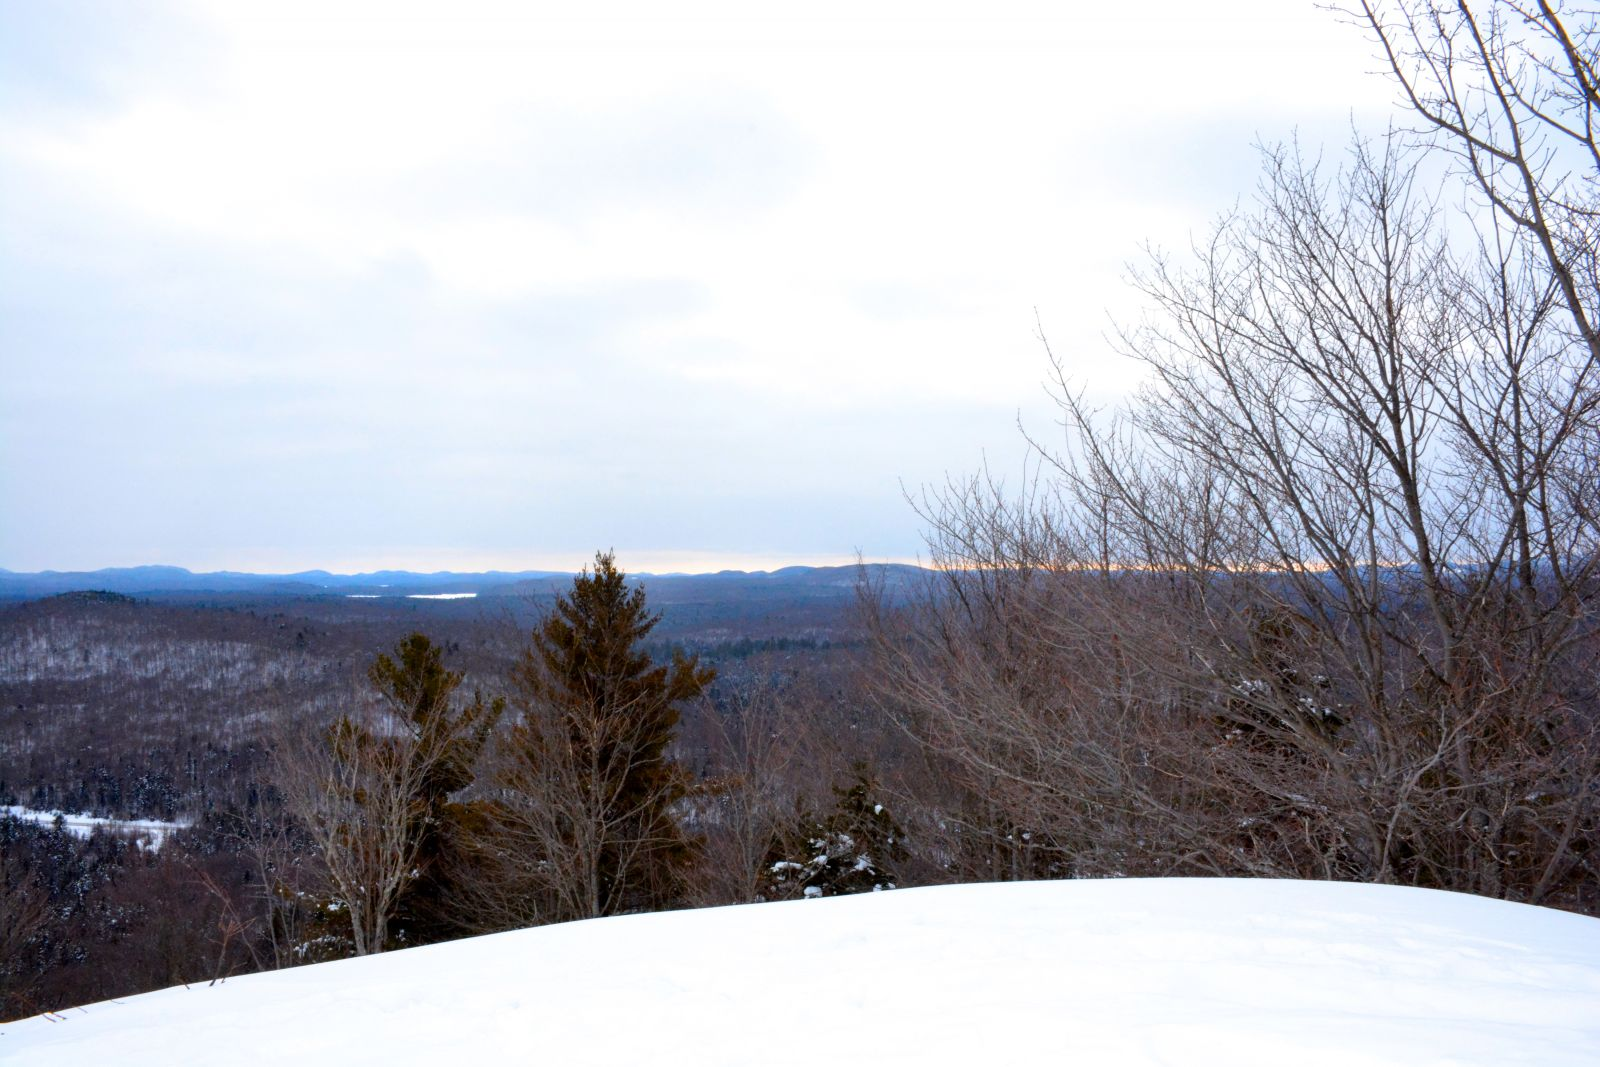 A view from the summit of Goodman Mountain